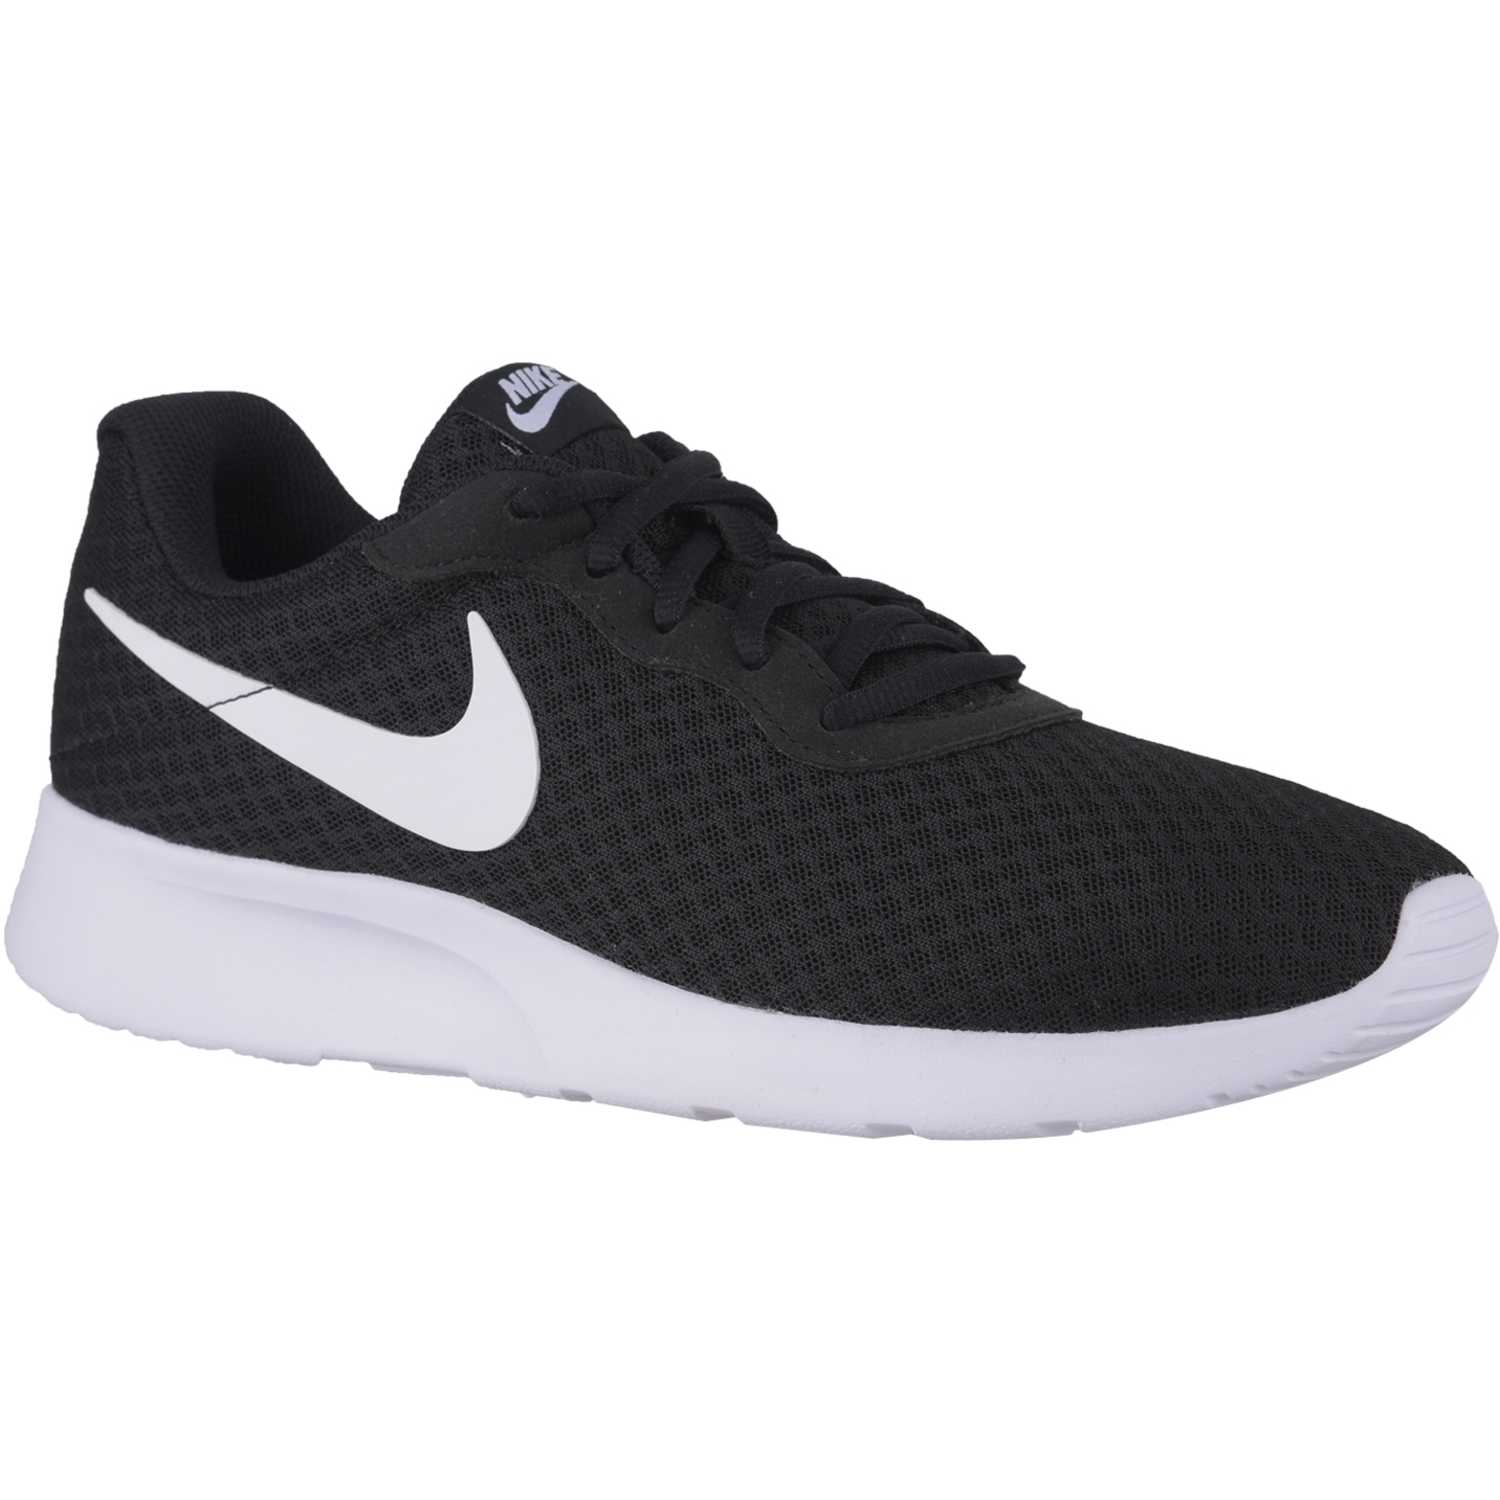 Nike Tanjun Negro / blanco Walking